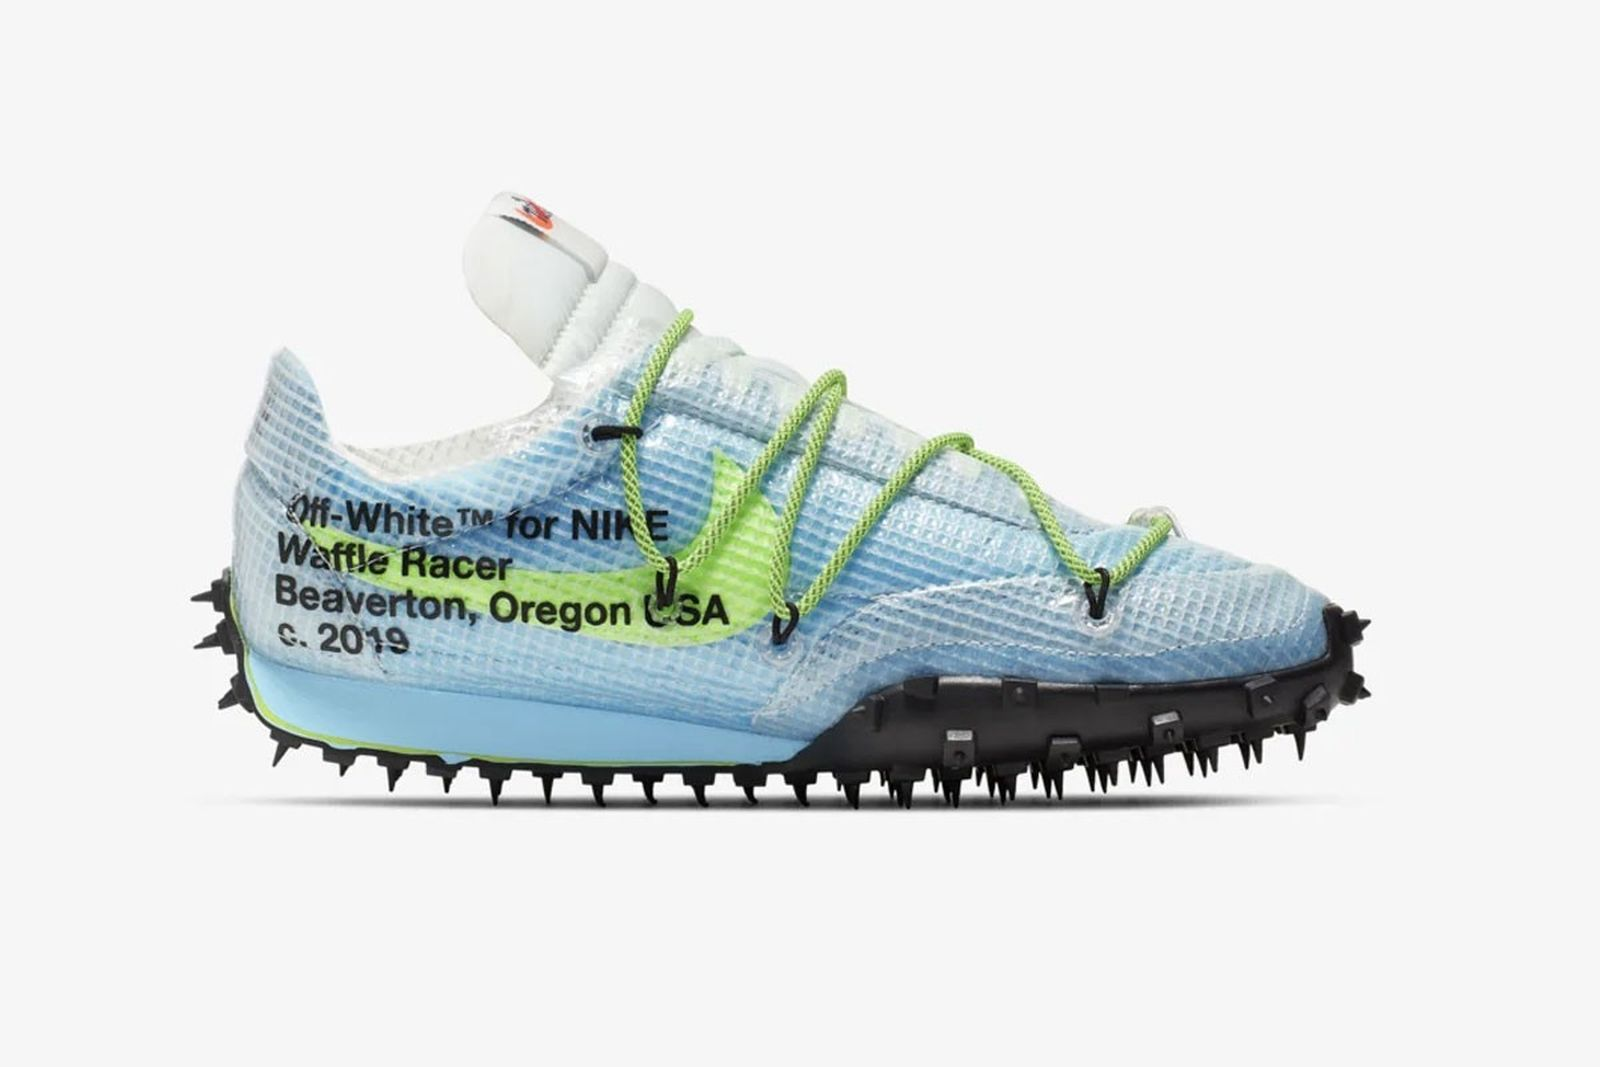 nike-off-white-guide-update-2020-waffle-racer1